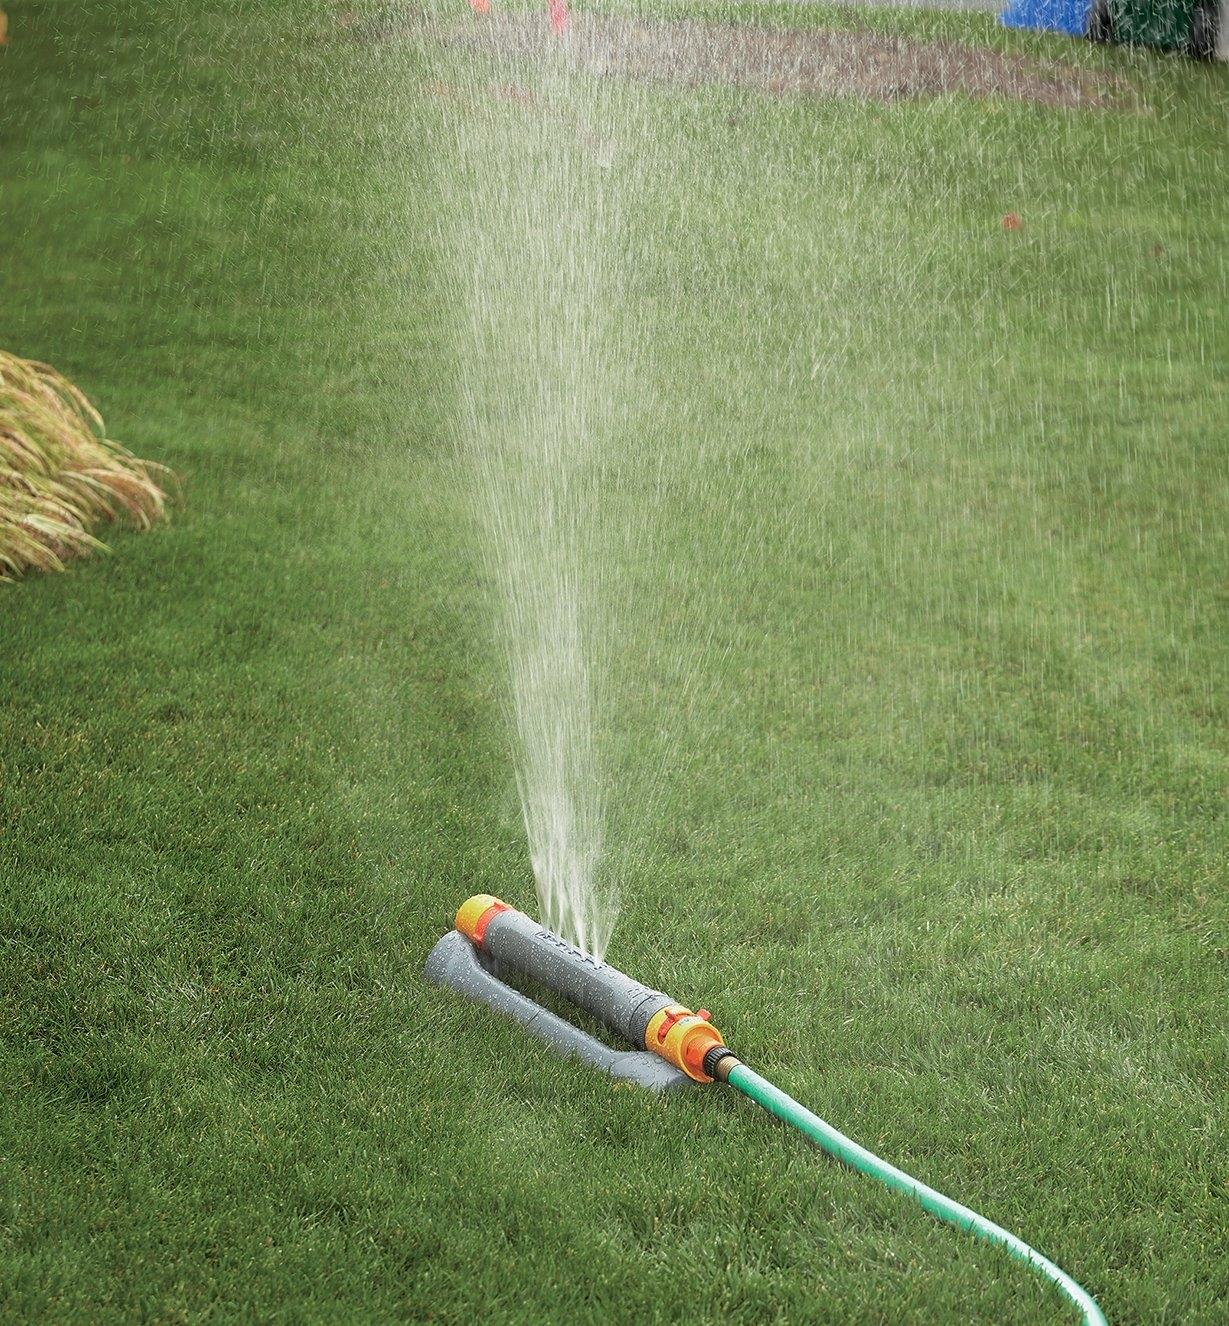 Hozelock Multi-Adjust Sprinkler/Mister watering a lawn with mist spray setting